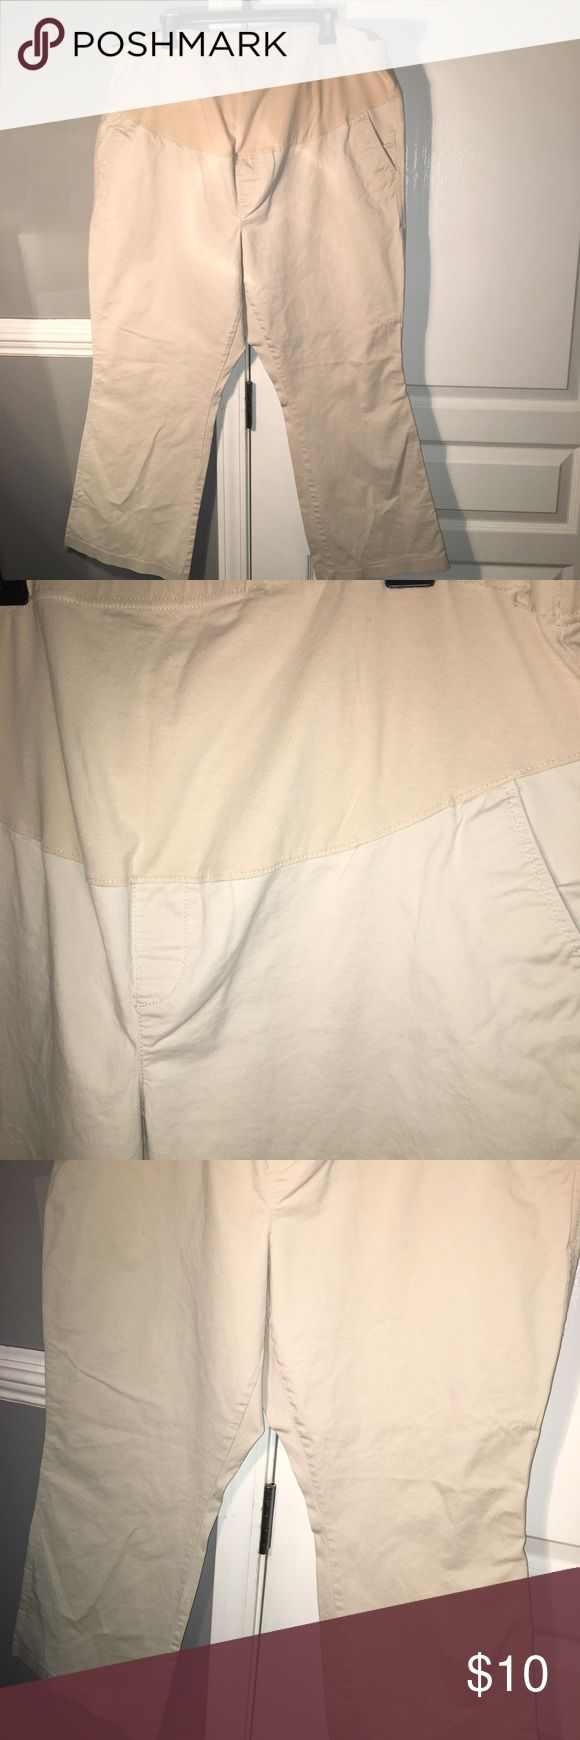 """Plus size khaki maternity pants Mid cover maternity pants. Khaki. Side and back pockets. Inseam measures 27"""". Size 18. Old Navy. Old Navy Pants"""